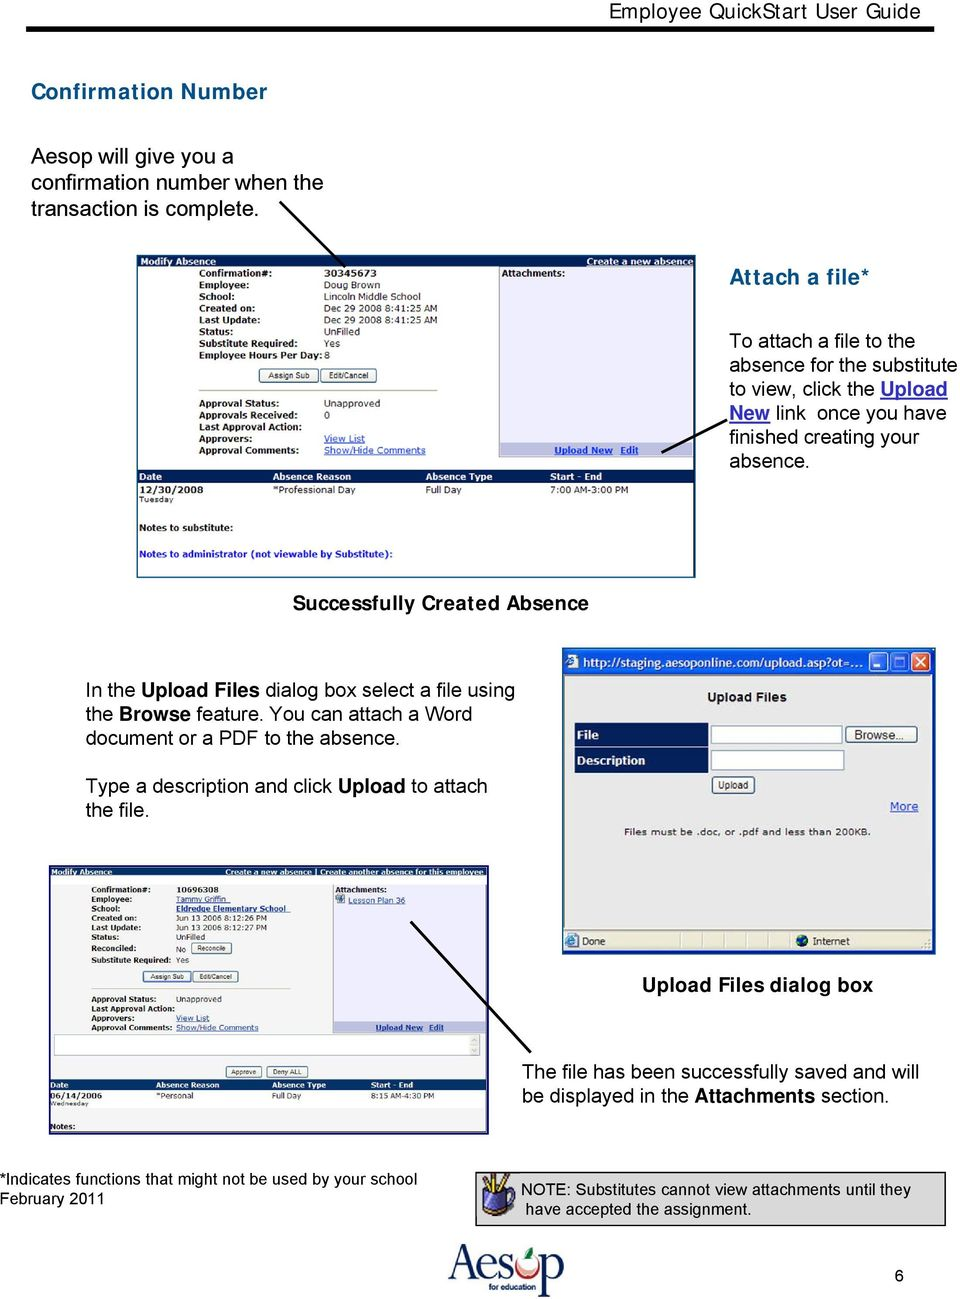 Successfully Created Absence In the Upload Files dialog box select a file using the Browse feature. You can attach a Word document or a PDF to the absence.